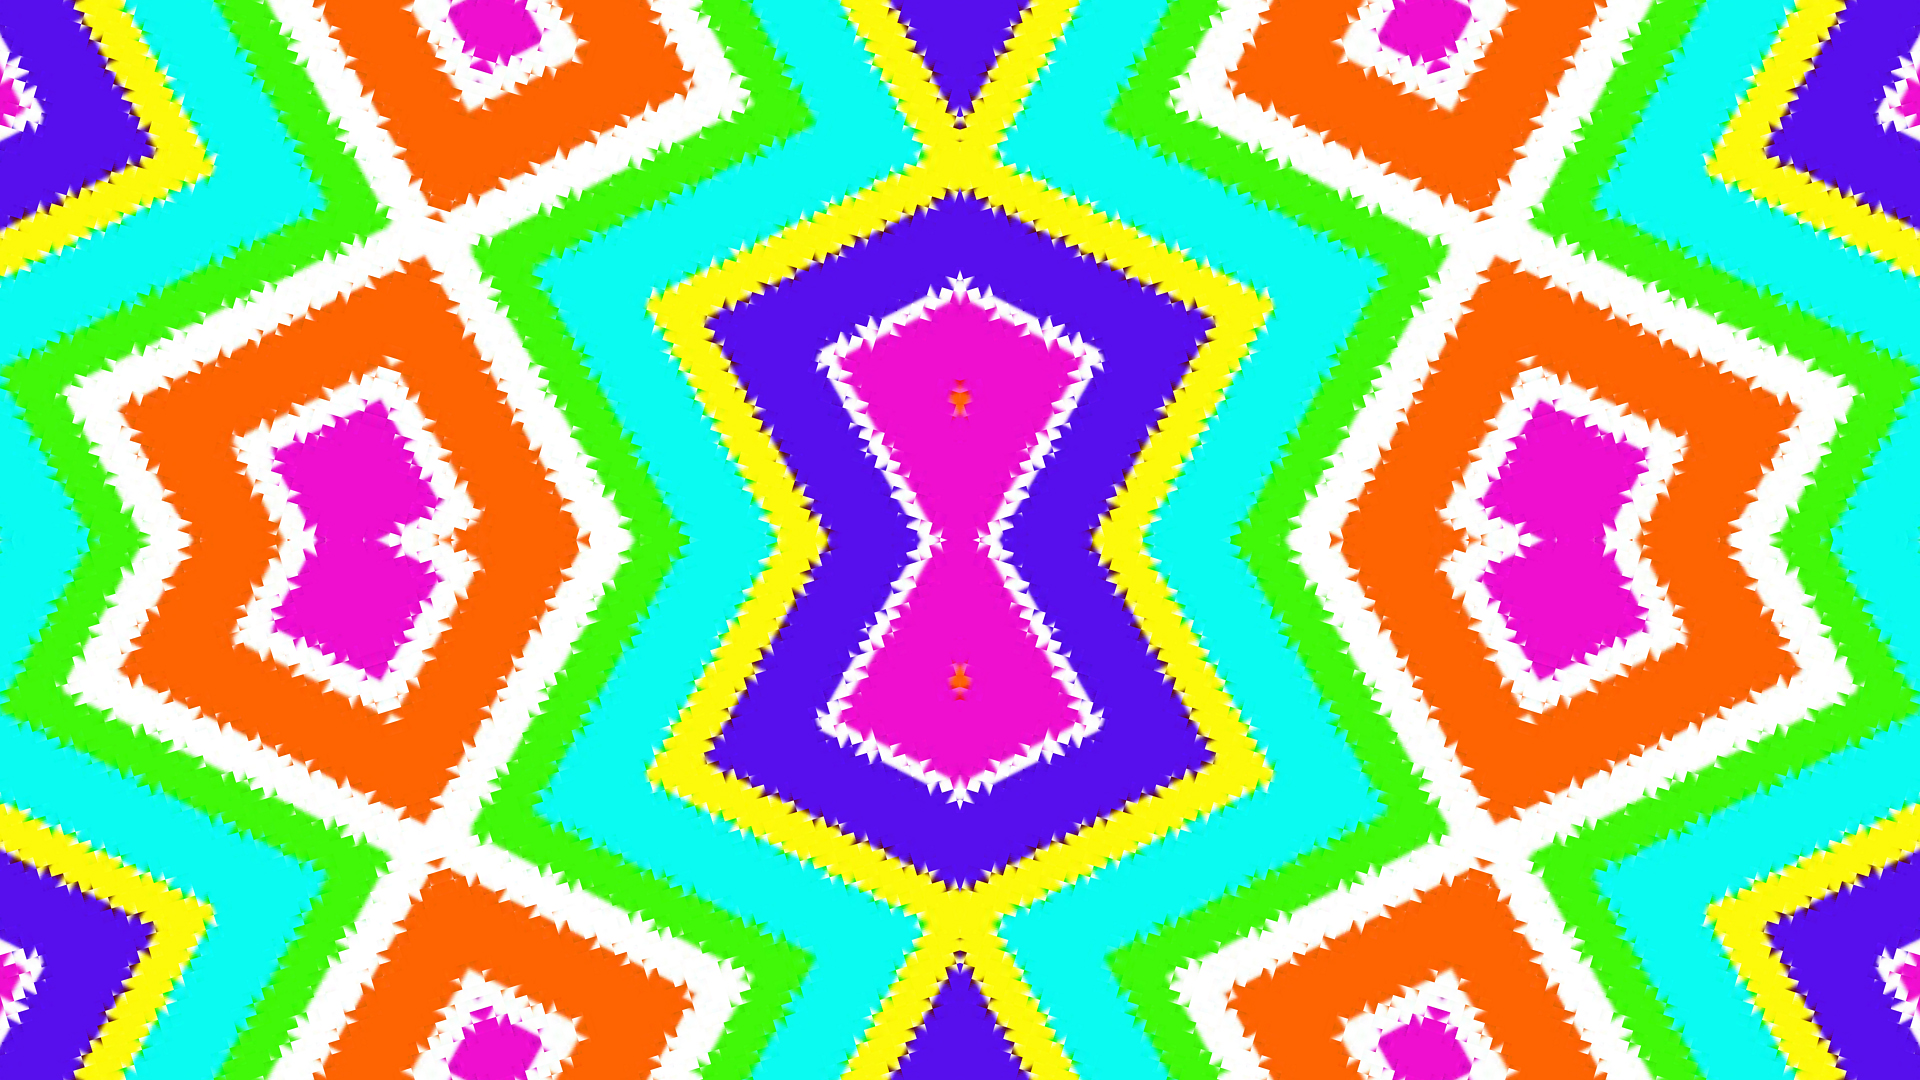 Blue Colorful Digital Art Geometry Green Shapes White Yellow Orange Color 1920x1080